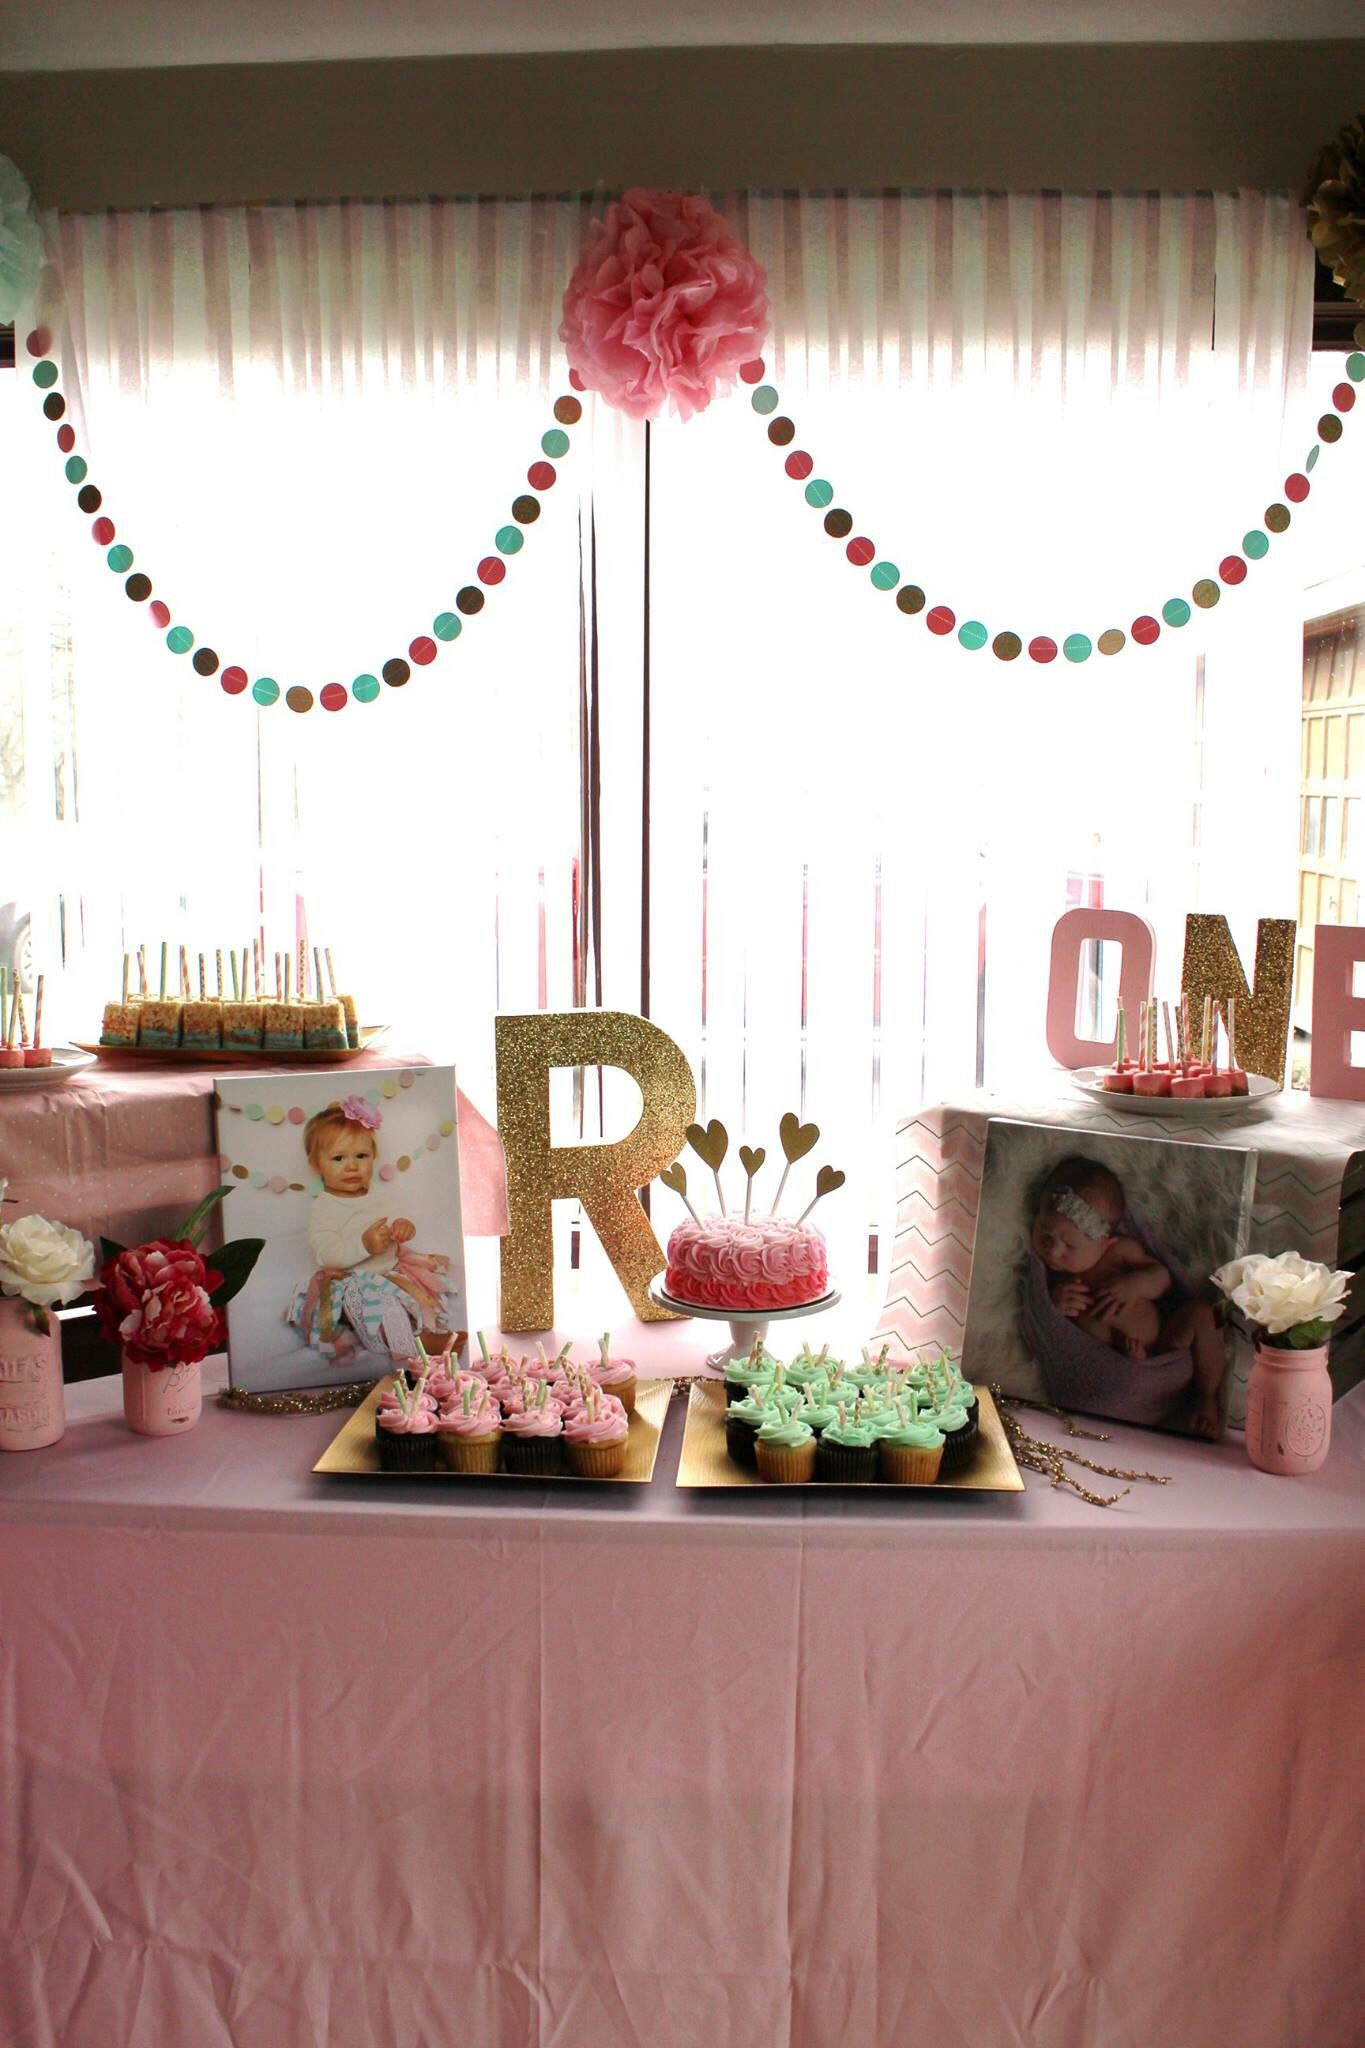 1st Birthday Table Decorations Pink Mint And Gold Cupcakes Streamers